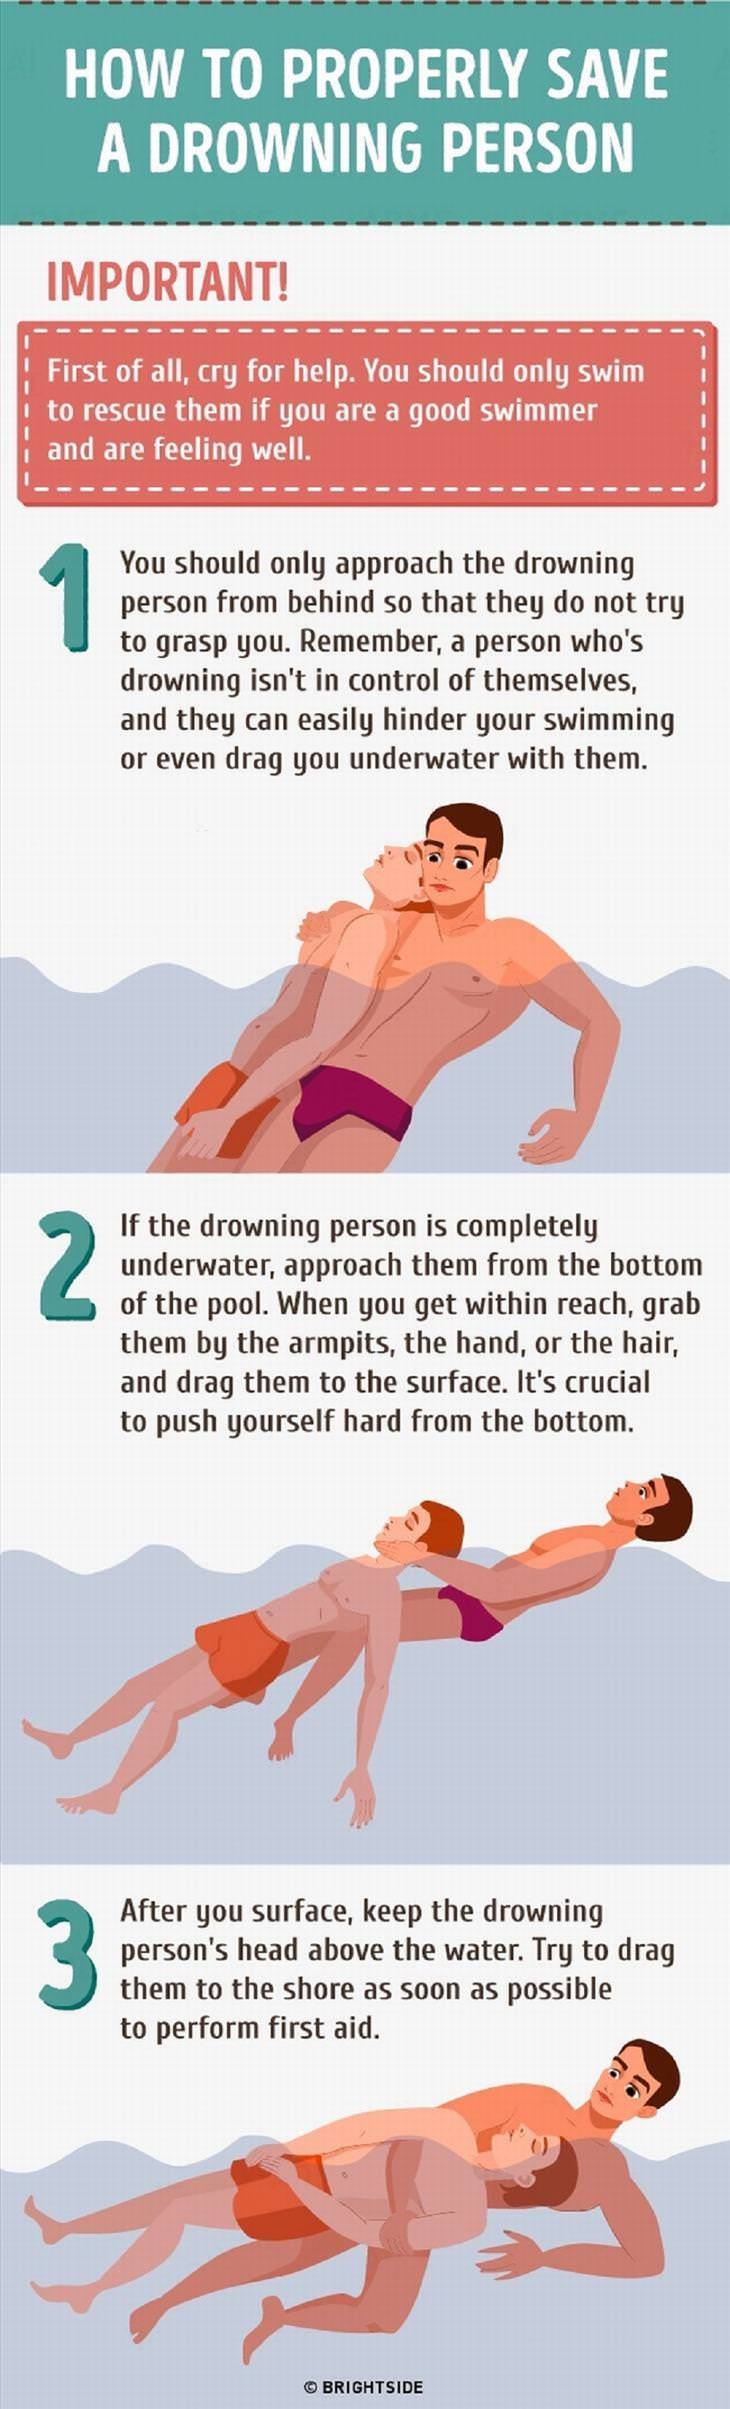 drowning tips